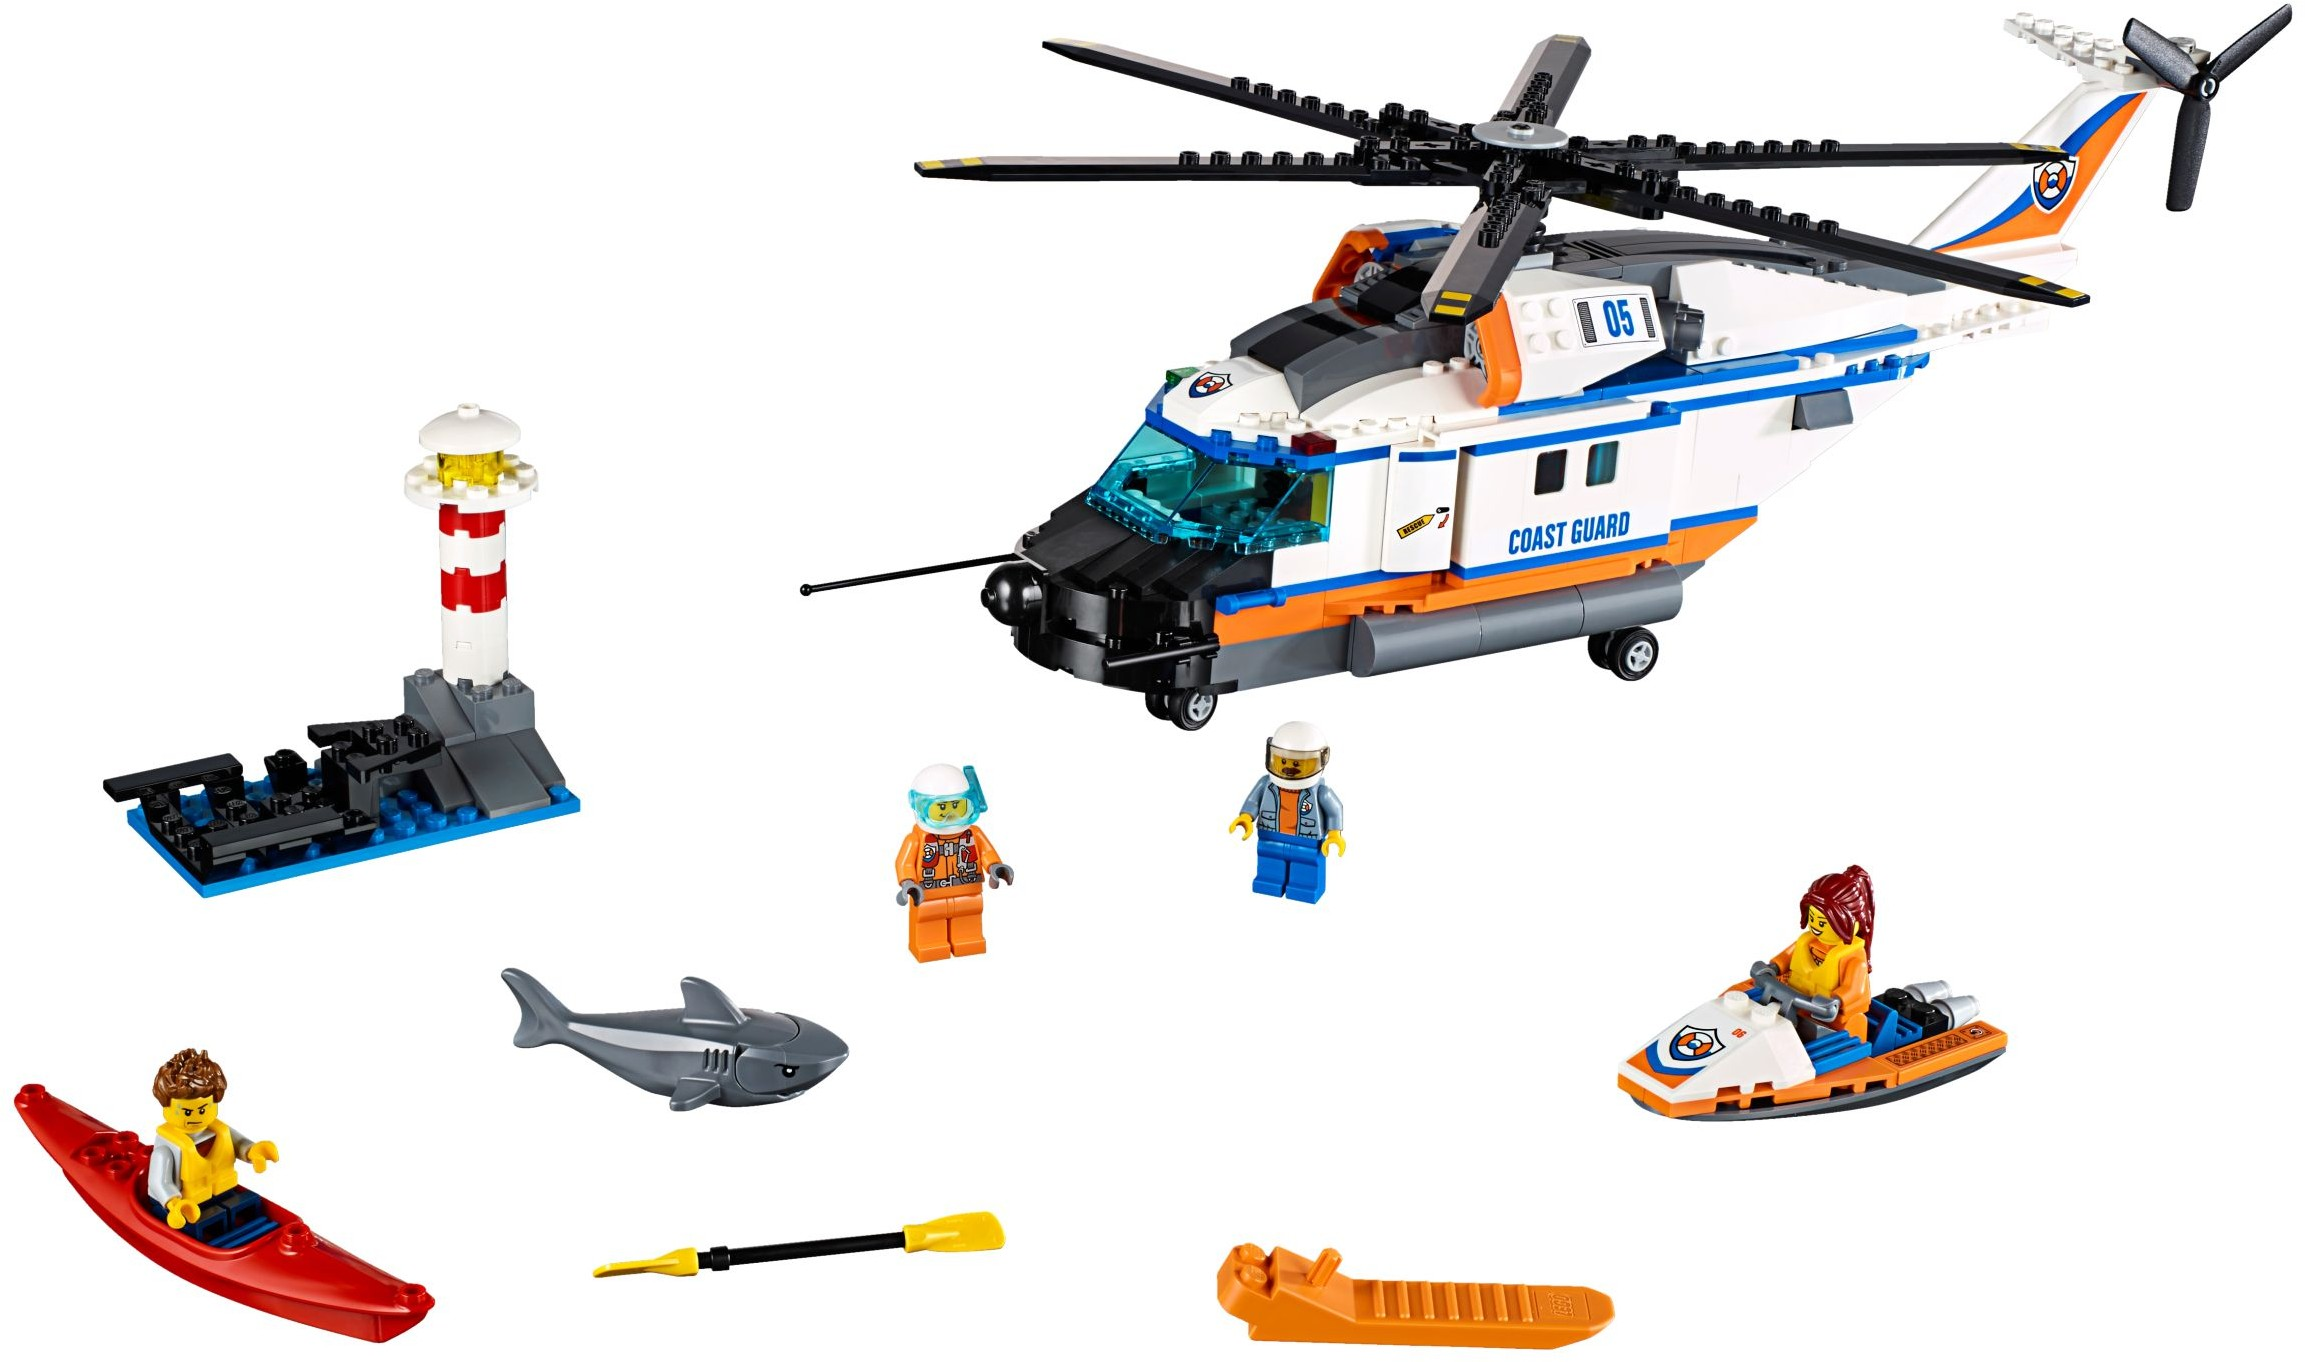 lego rescue helicopter instructions with Subtheme Coast Guard on Theme LEGOLAND together with Mobile Crane 8053 likewise Coast Guard Helicopter together with Fire Helicopter as well Photostream.